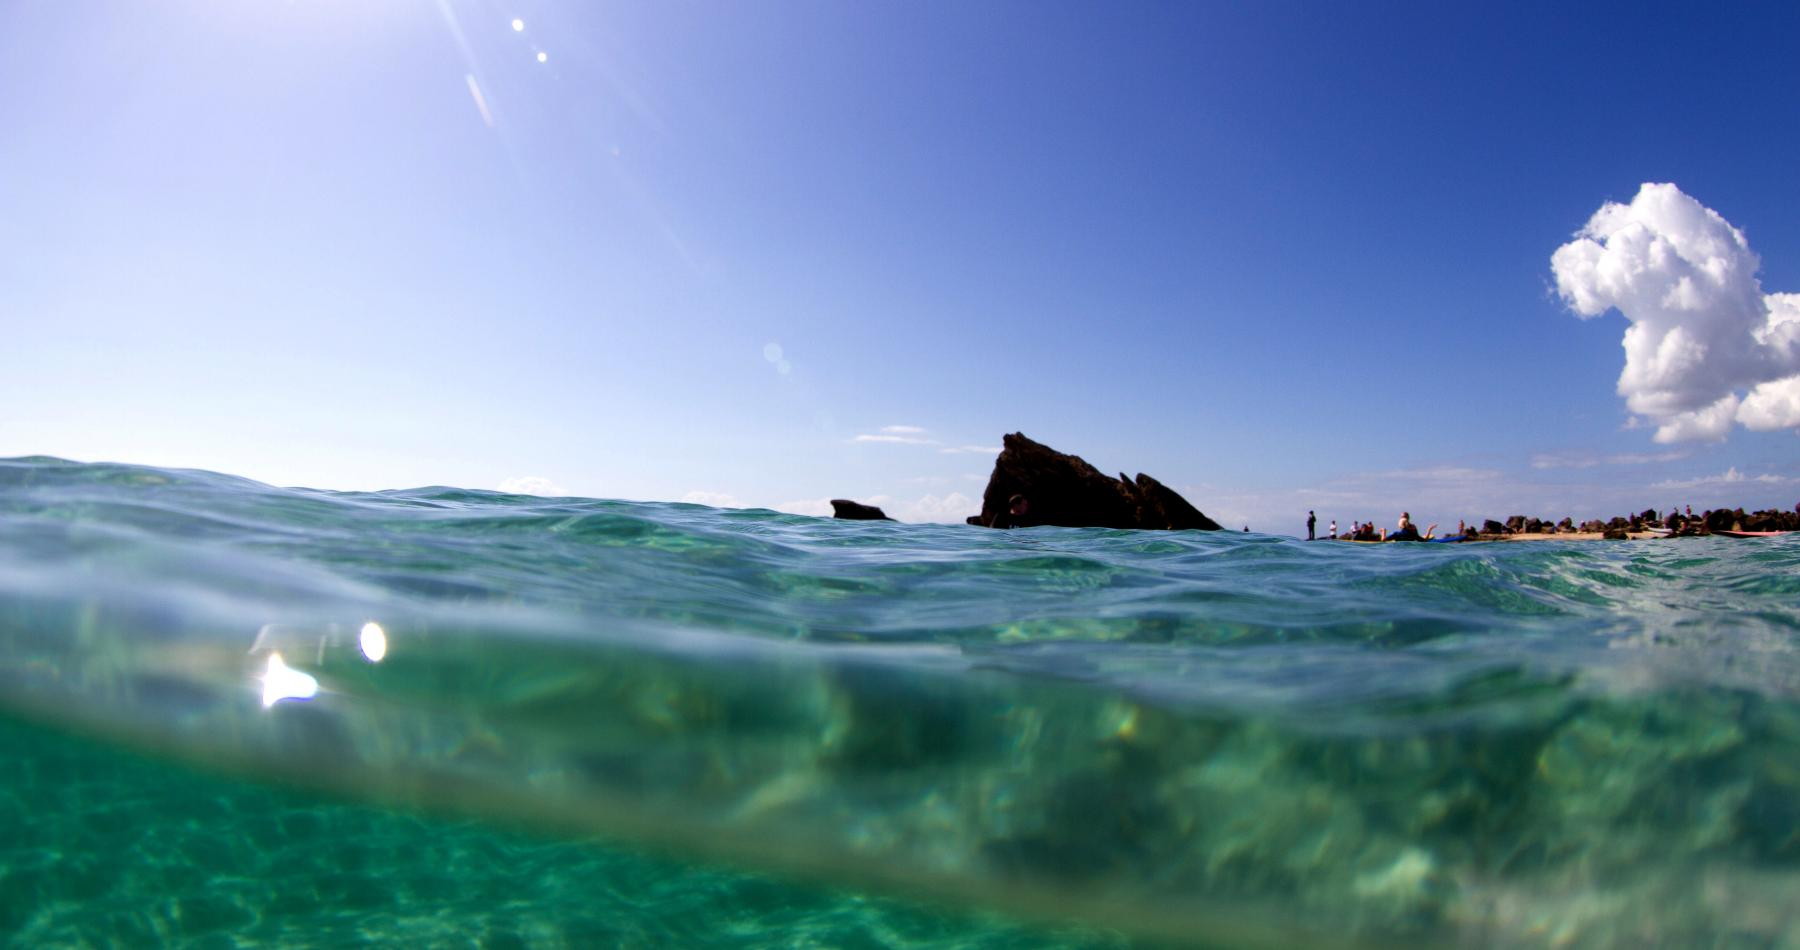 Adult Surf Lessons - Learn to Surf in Paradise, Gold Coast ...